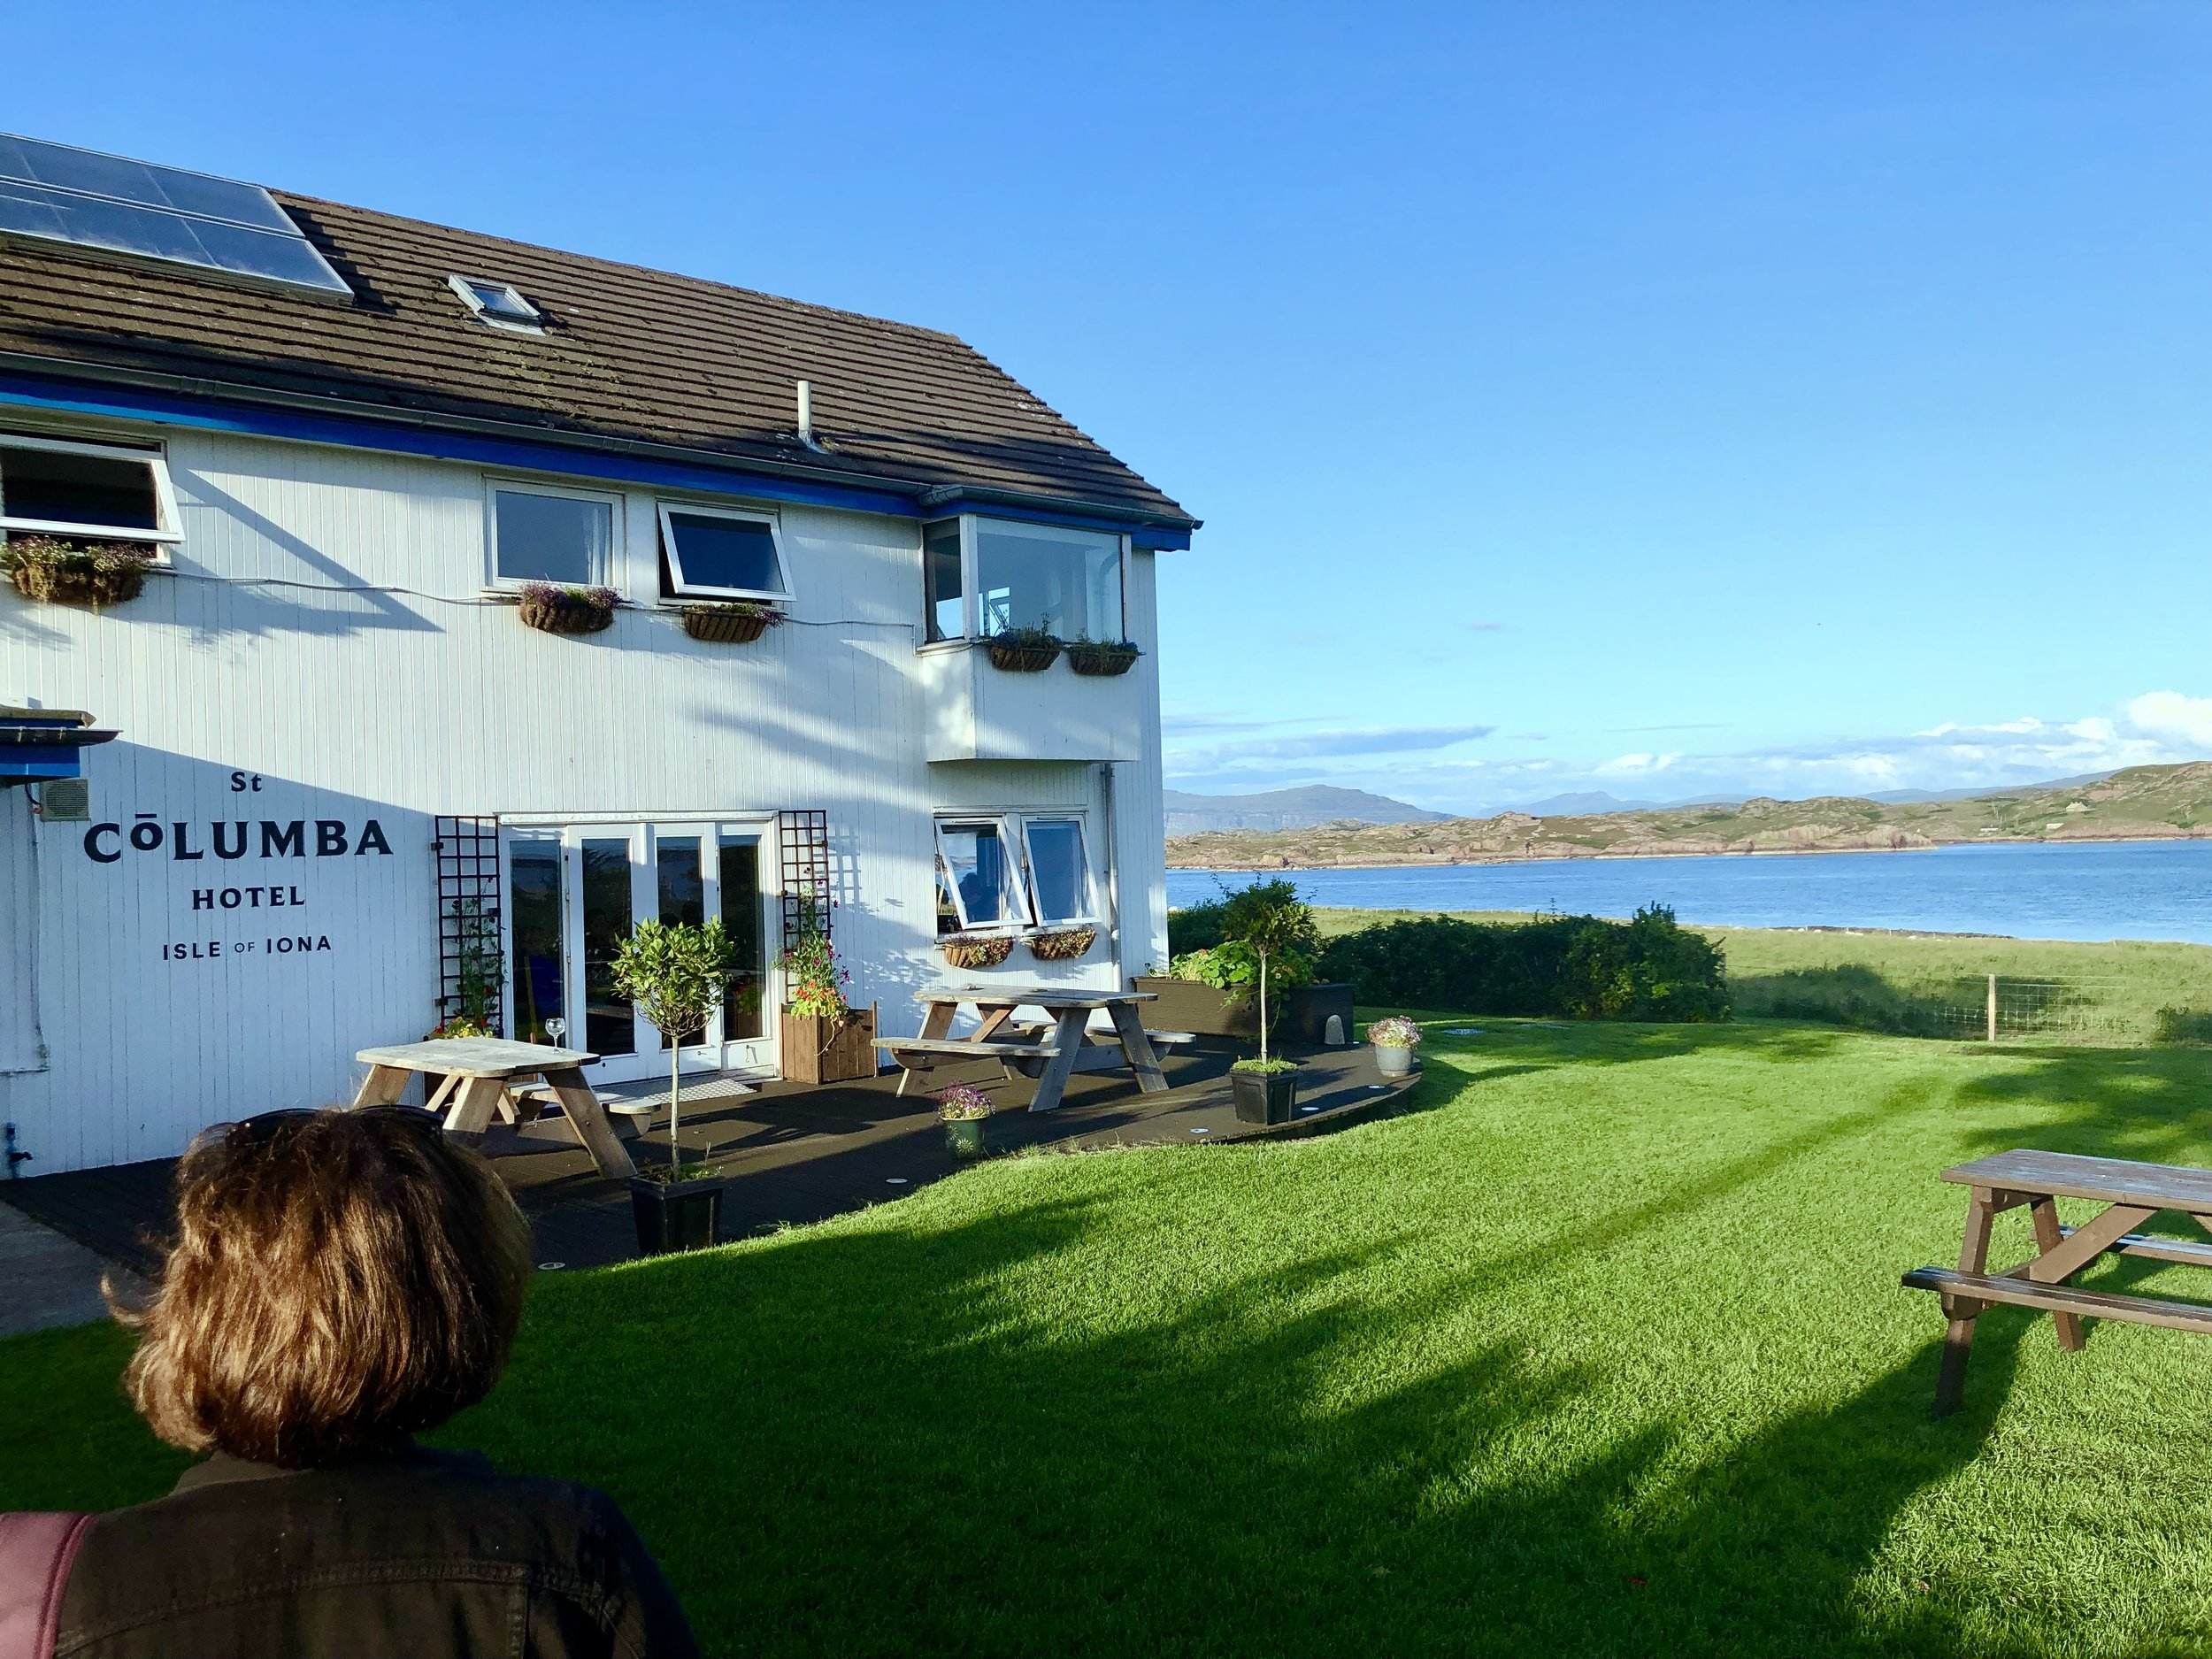 St. Columba Hotel on Iona